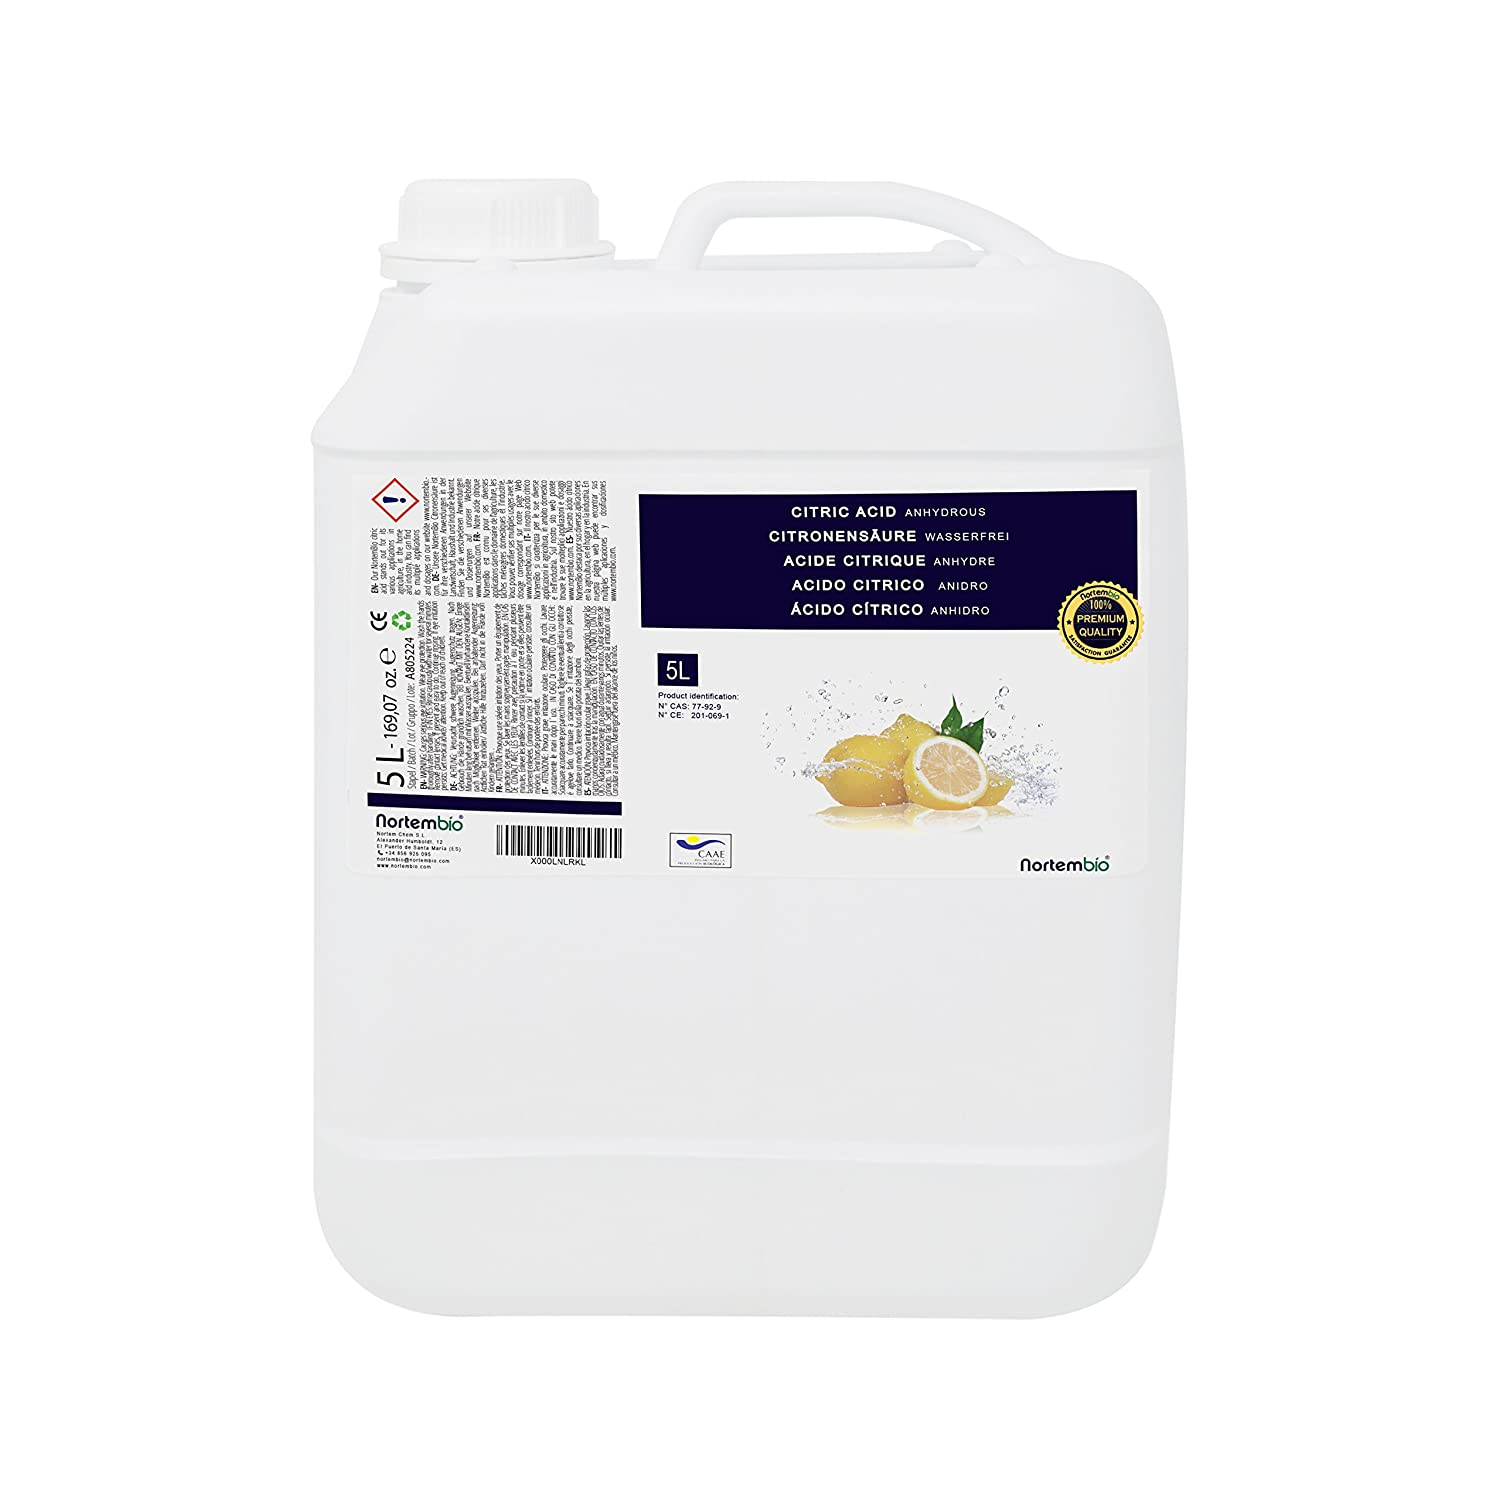 Citric Acid NortemBio 5 L, Premium Quality, concentrated liquid, for organic production. Developed in UK. Nortem Biotechnology